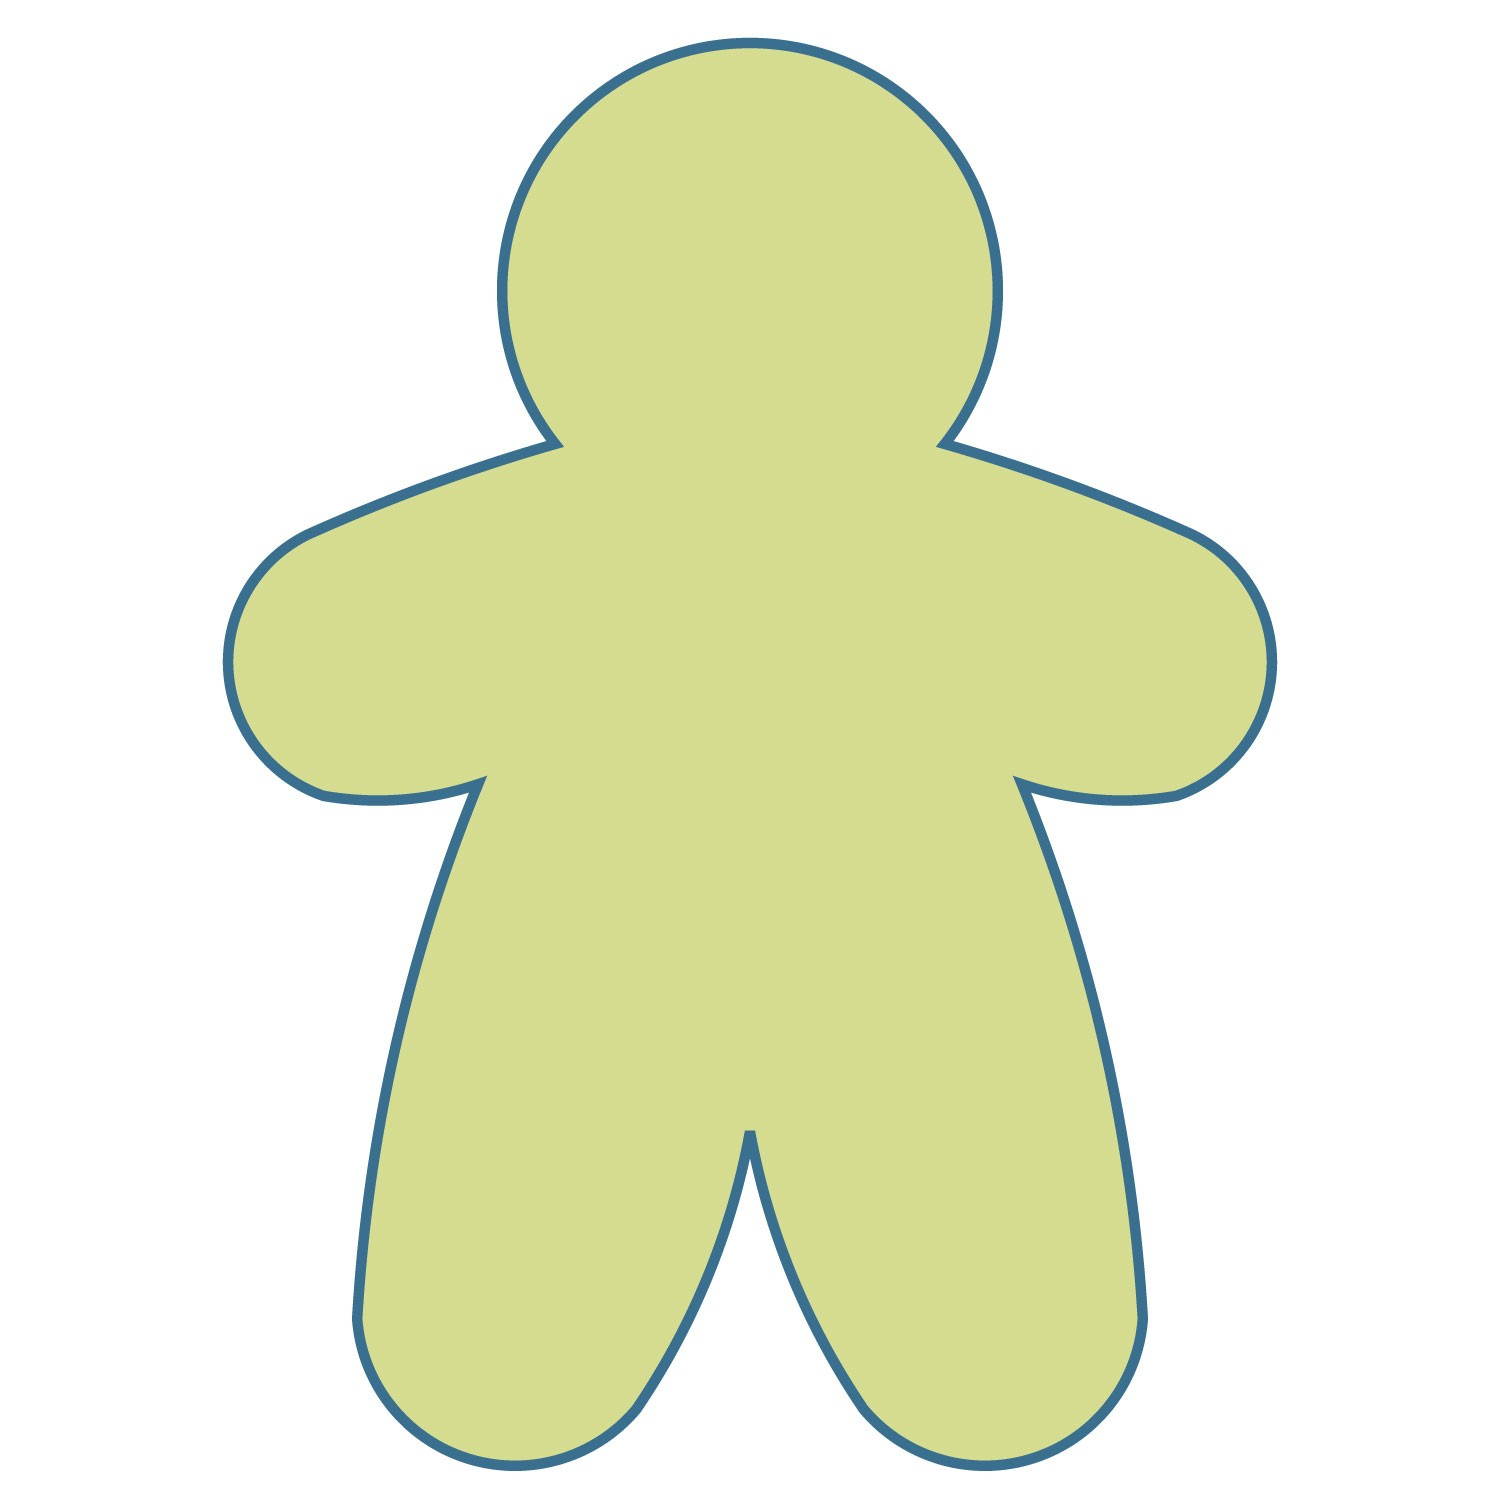 Ginger Bread Man Outline Free Download Best Ginger Bread Man